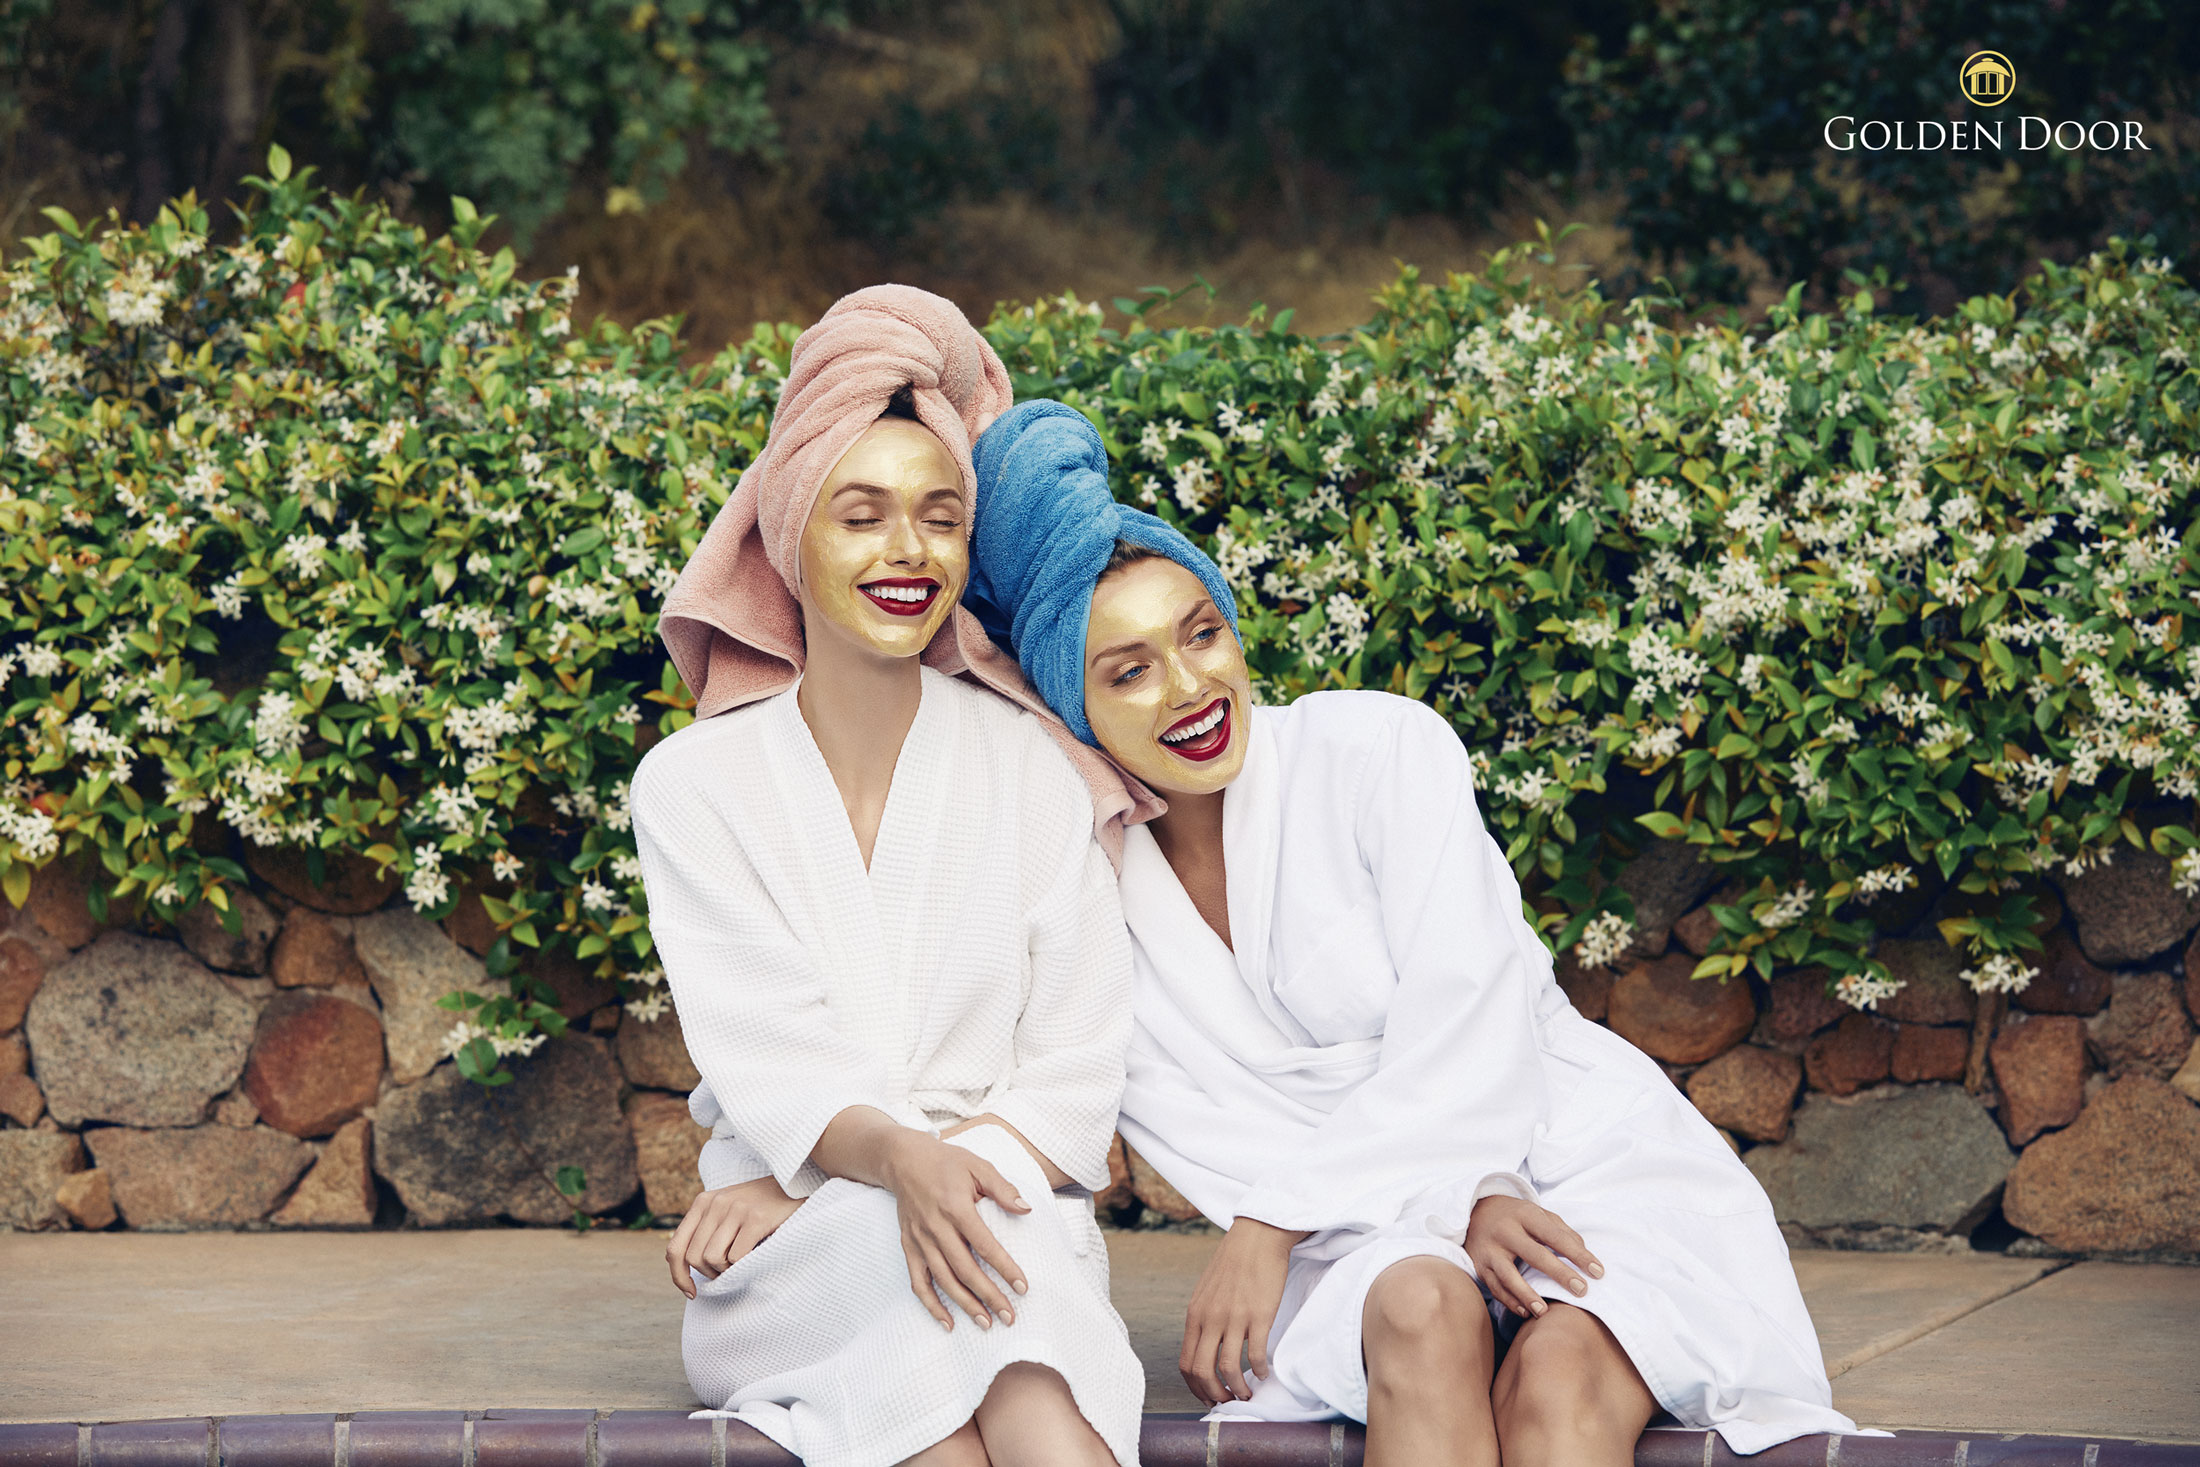 Two girls at a spa with bathrobes in gold facial masks laughing - Kimberly Genevieve Los Angeles Advertising Photographer